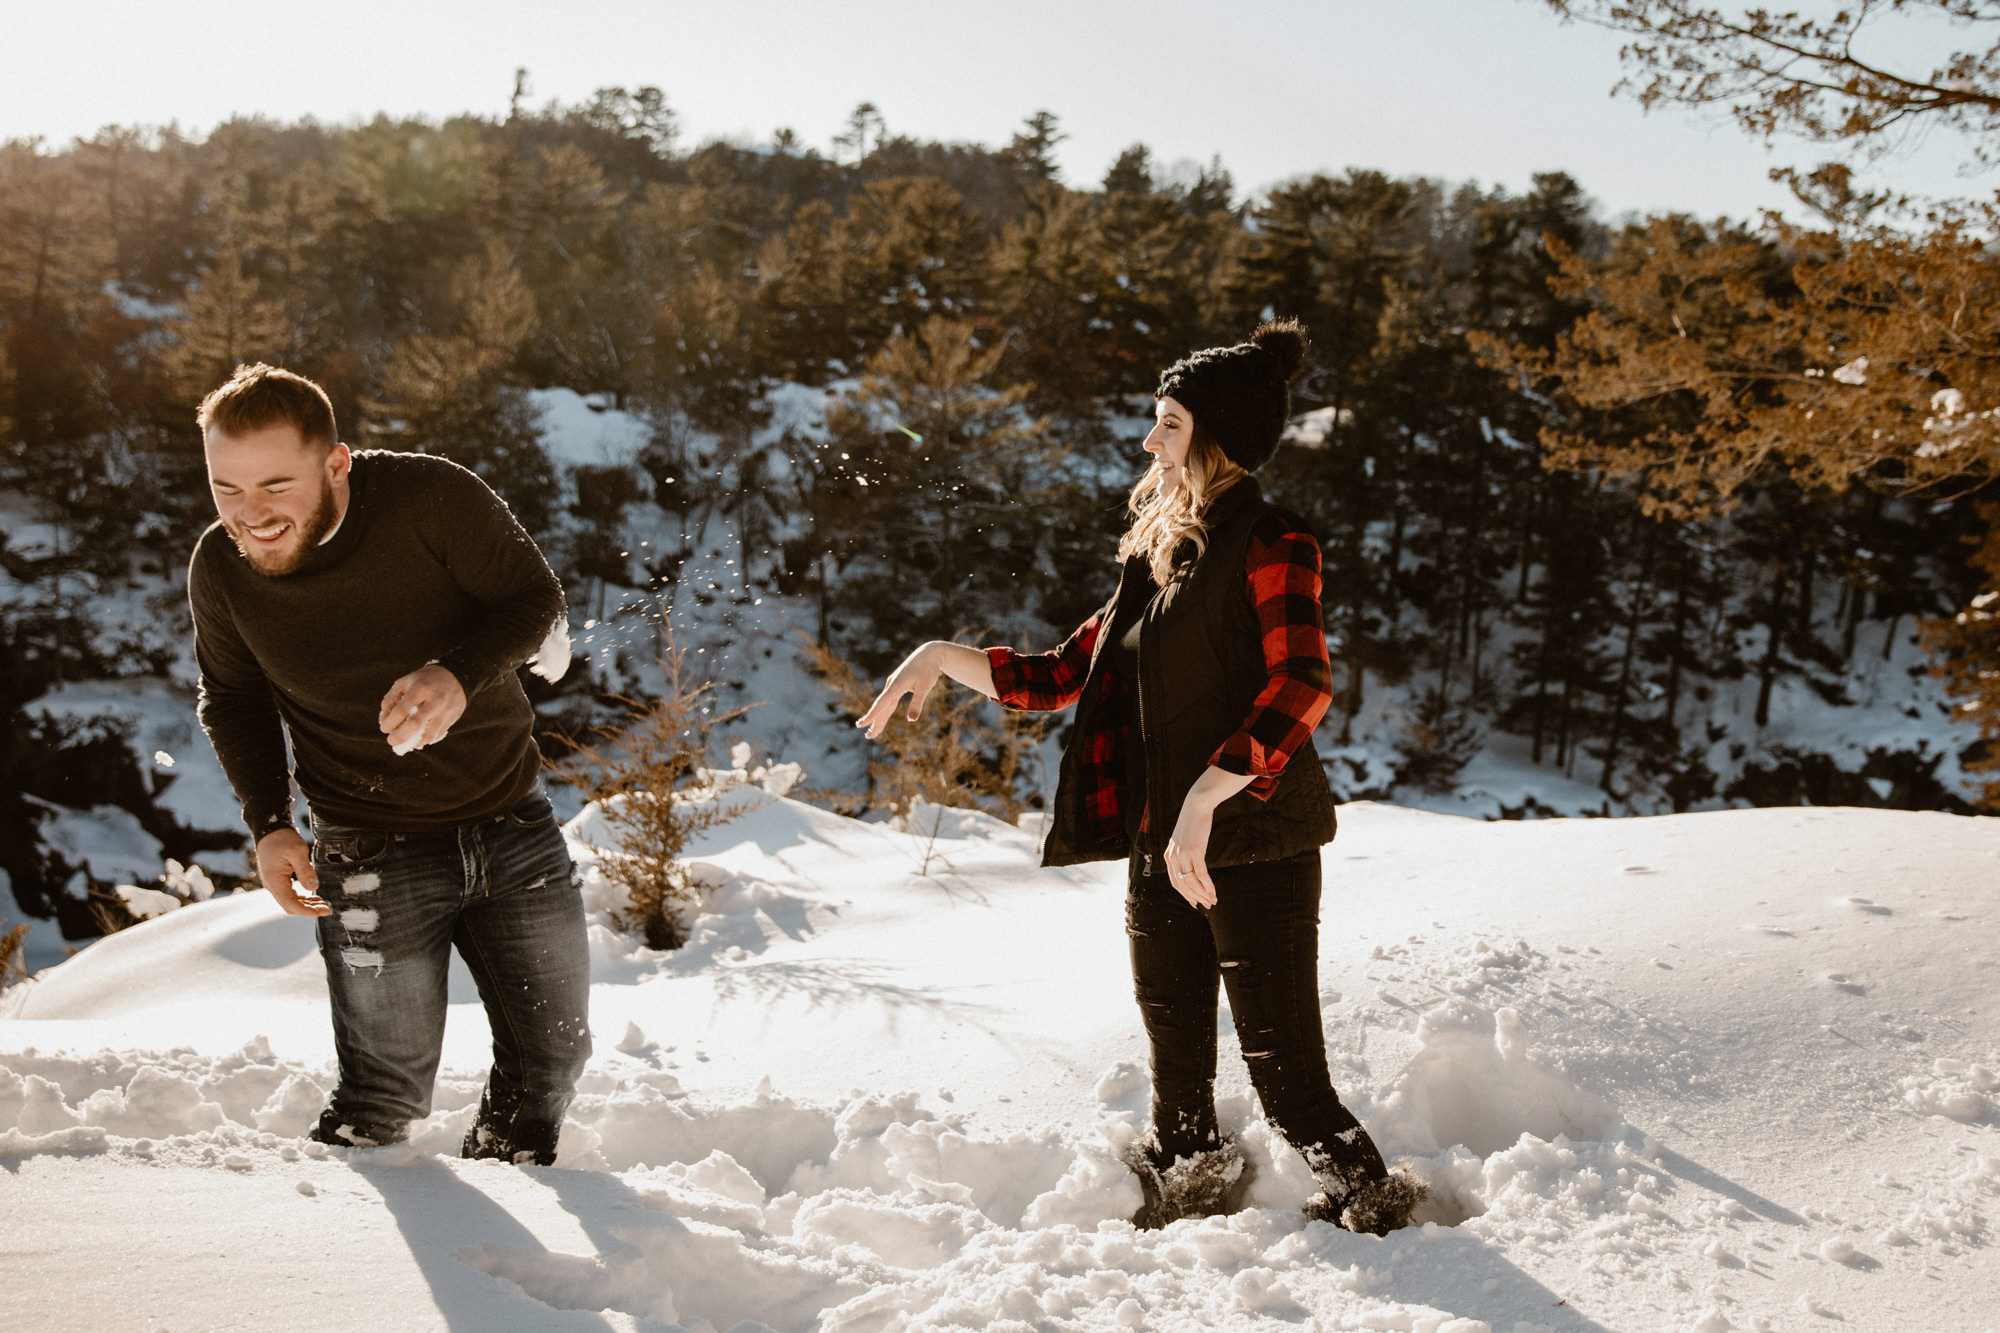 snowball-fight-during-an-engagement-photoshoot.jpg